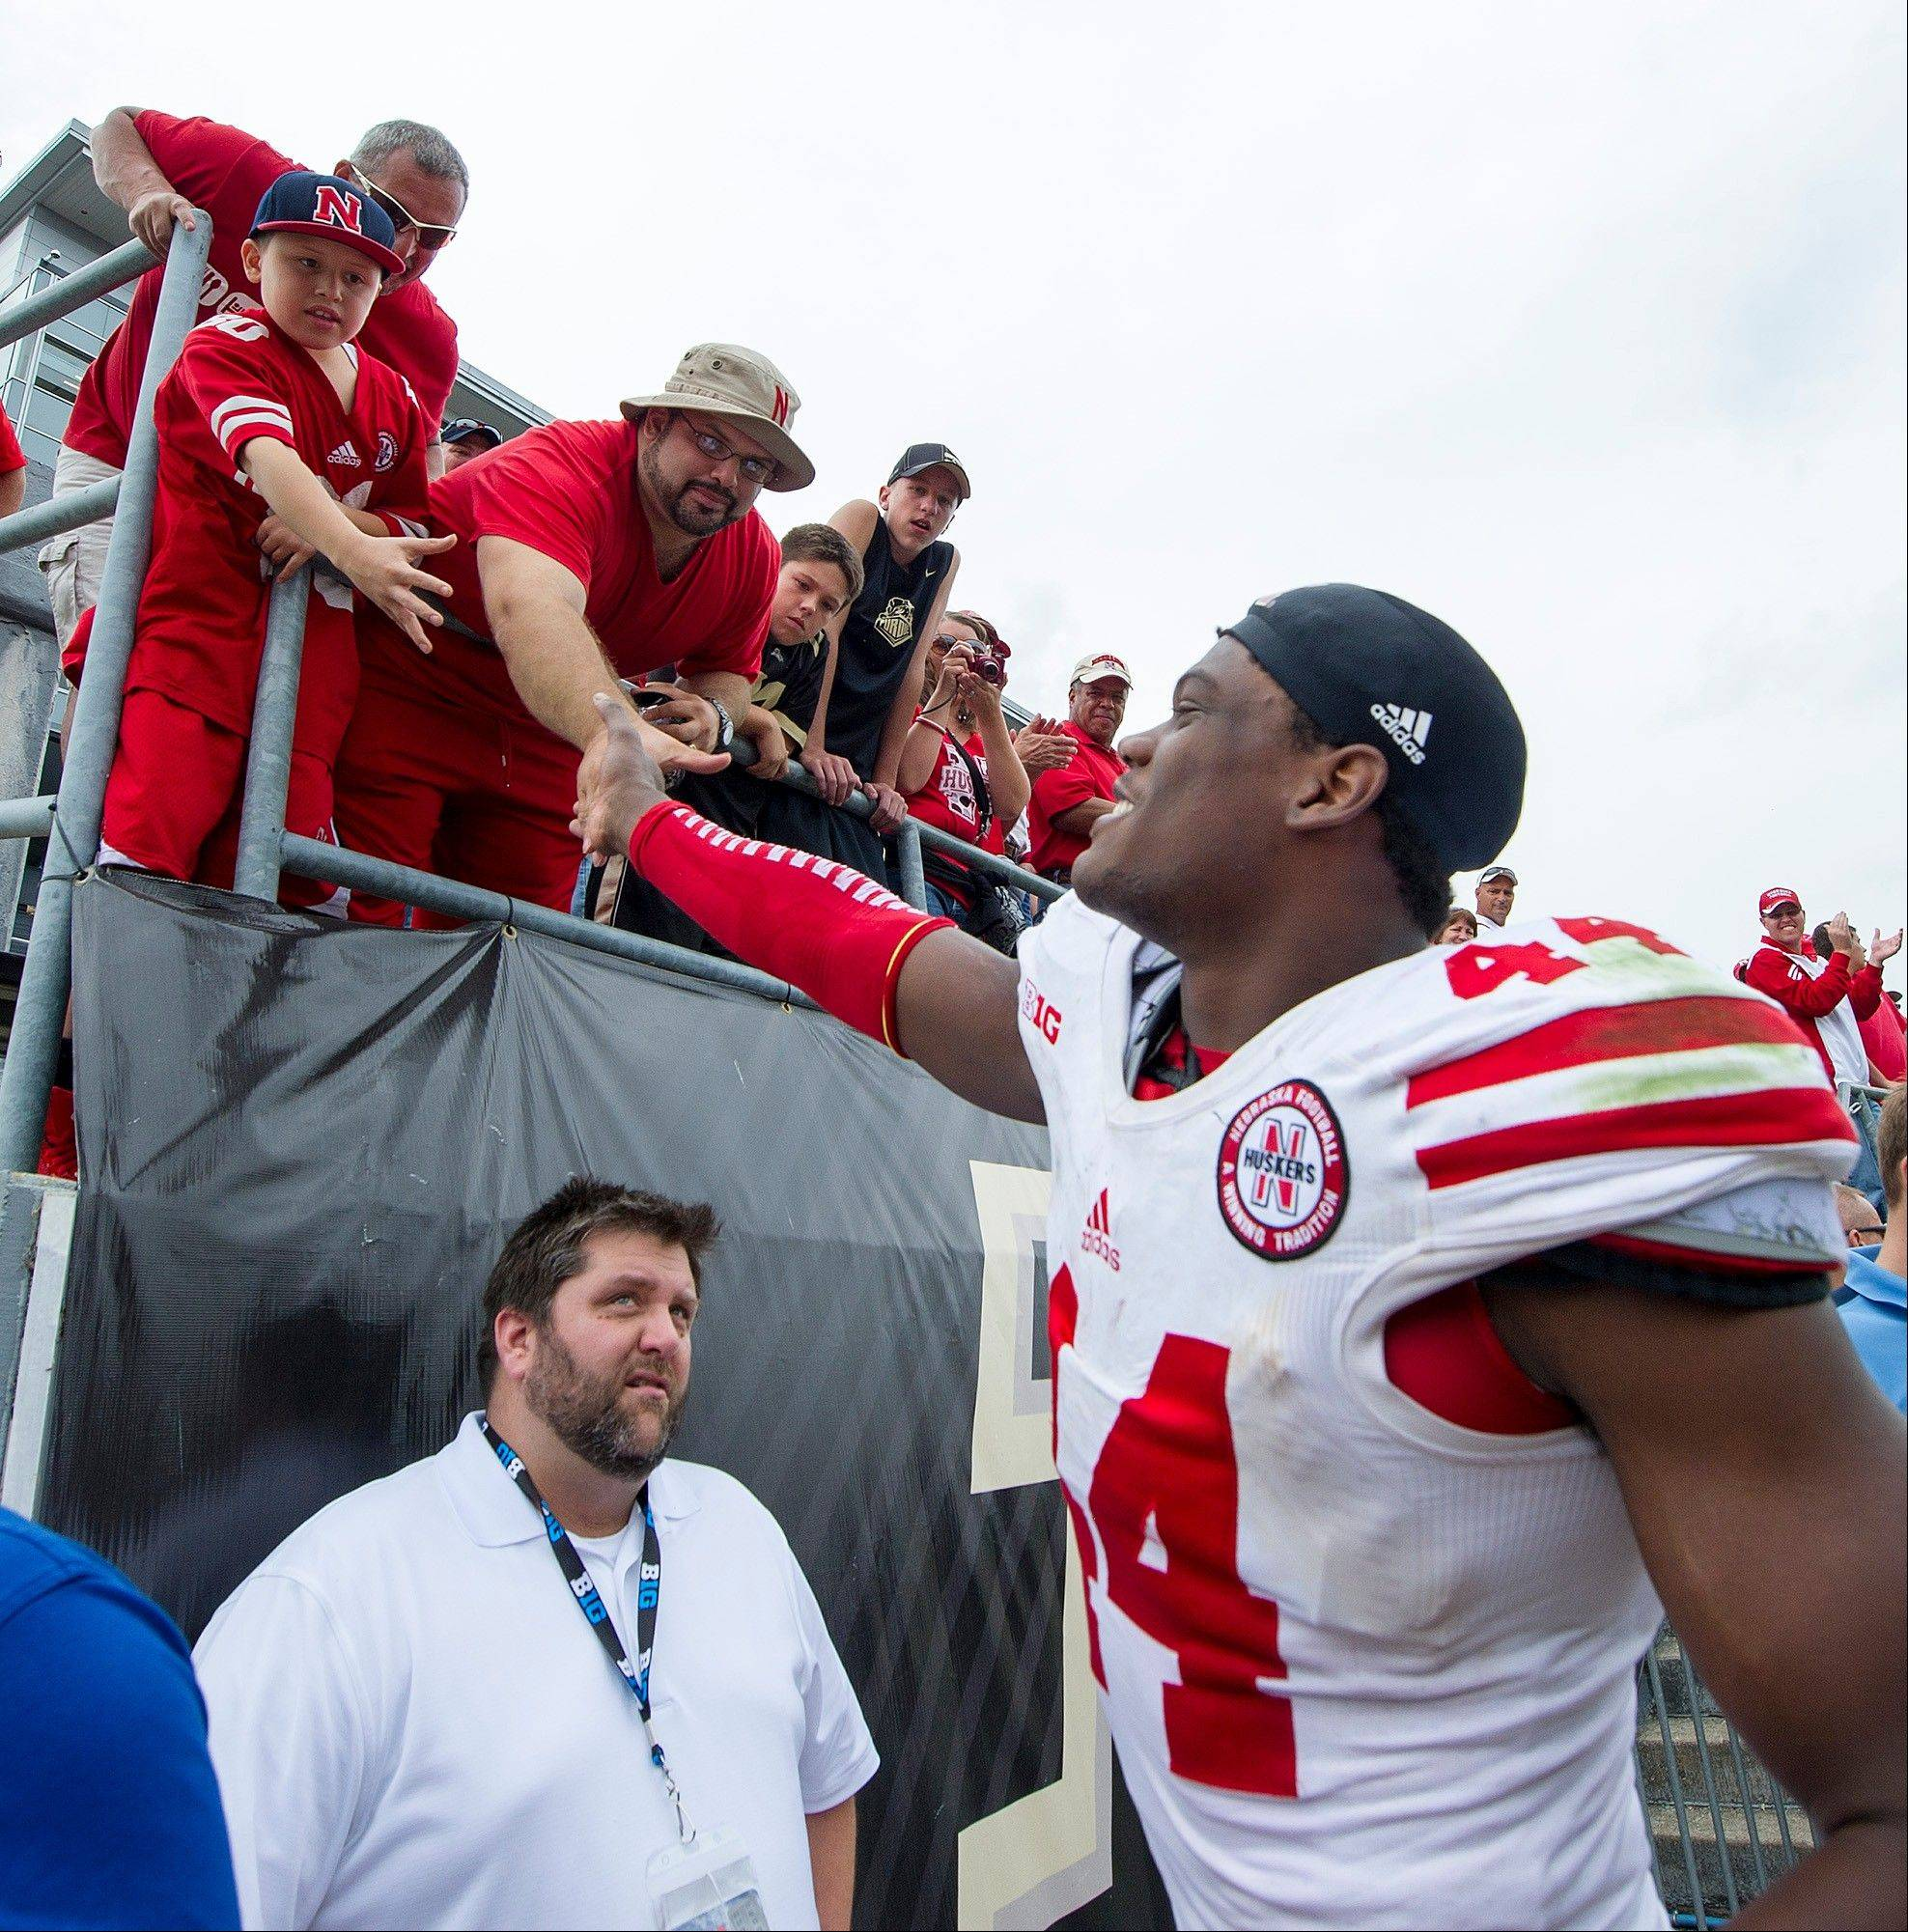 Nebraska's Randy Gregory celebrates with fans as he leaves the field after a big win over Purdue on Saturday in West Lafayette, Ind.